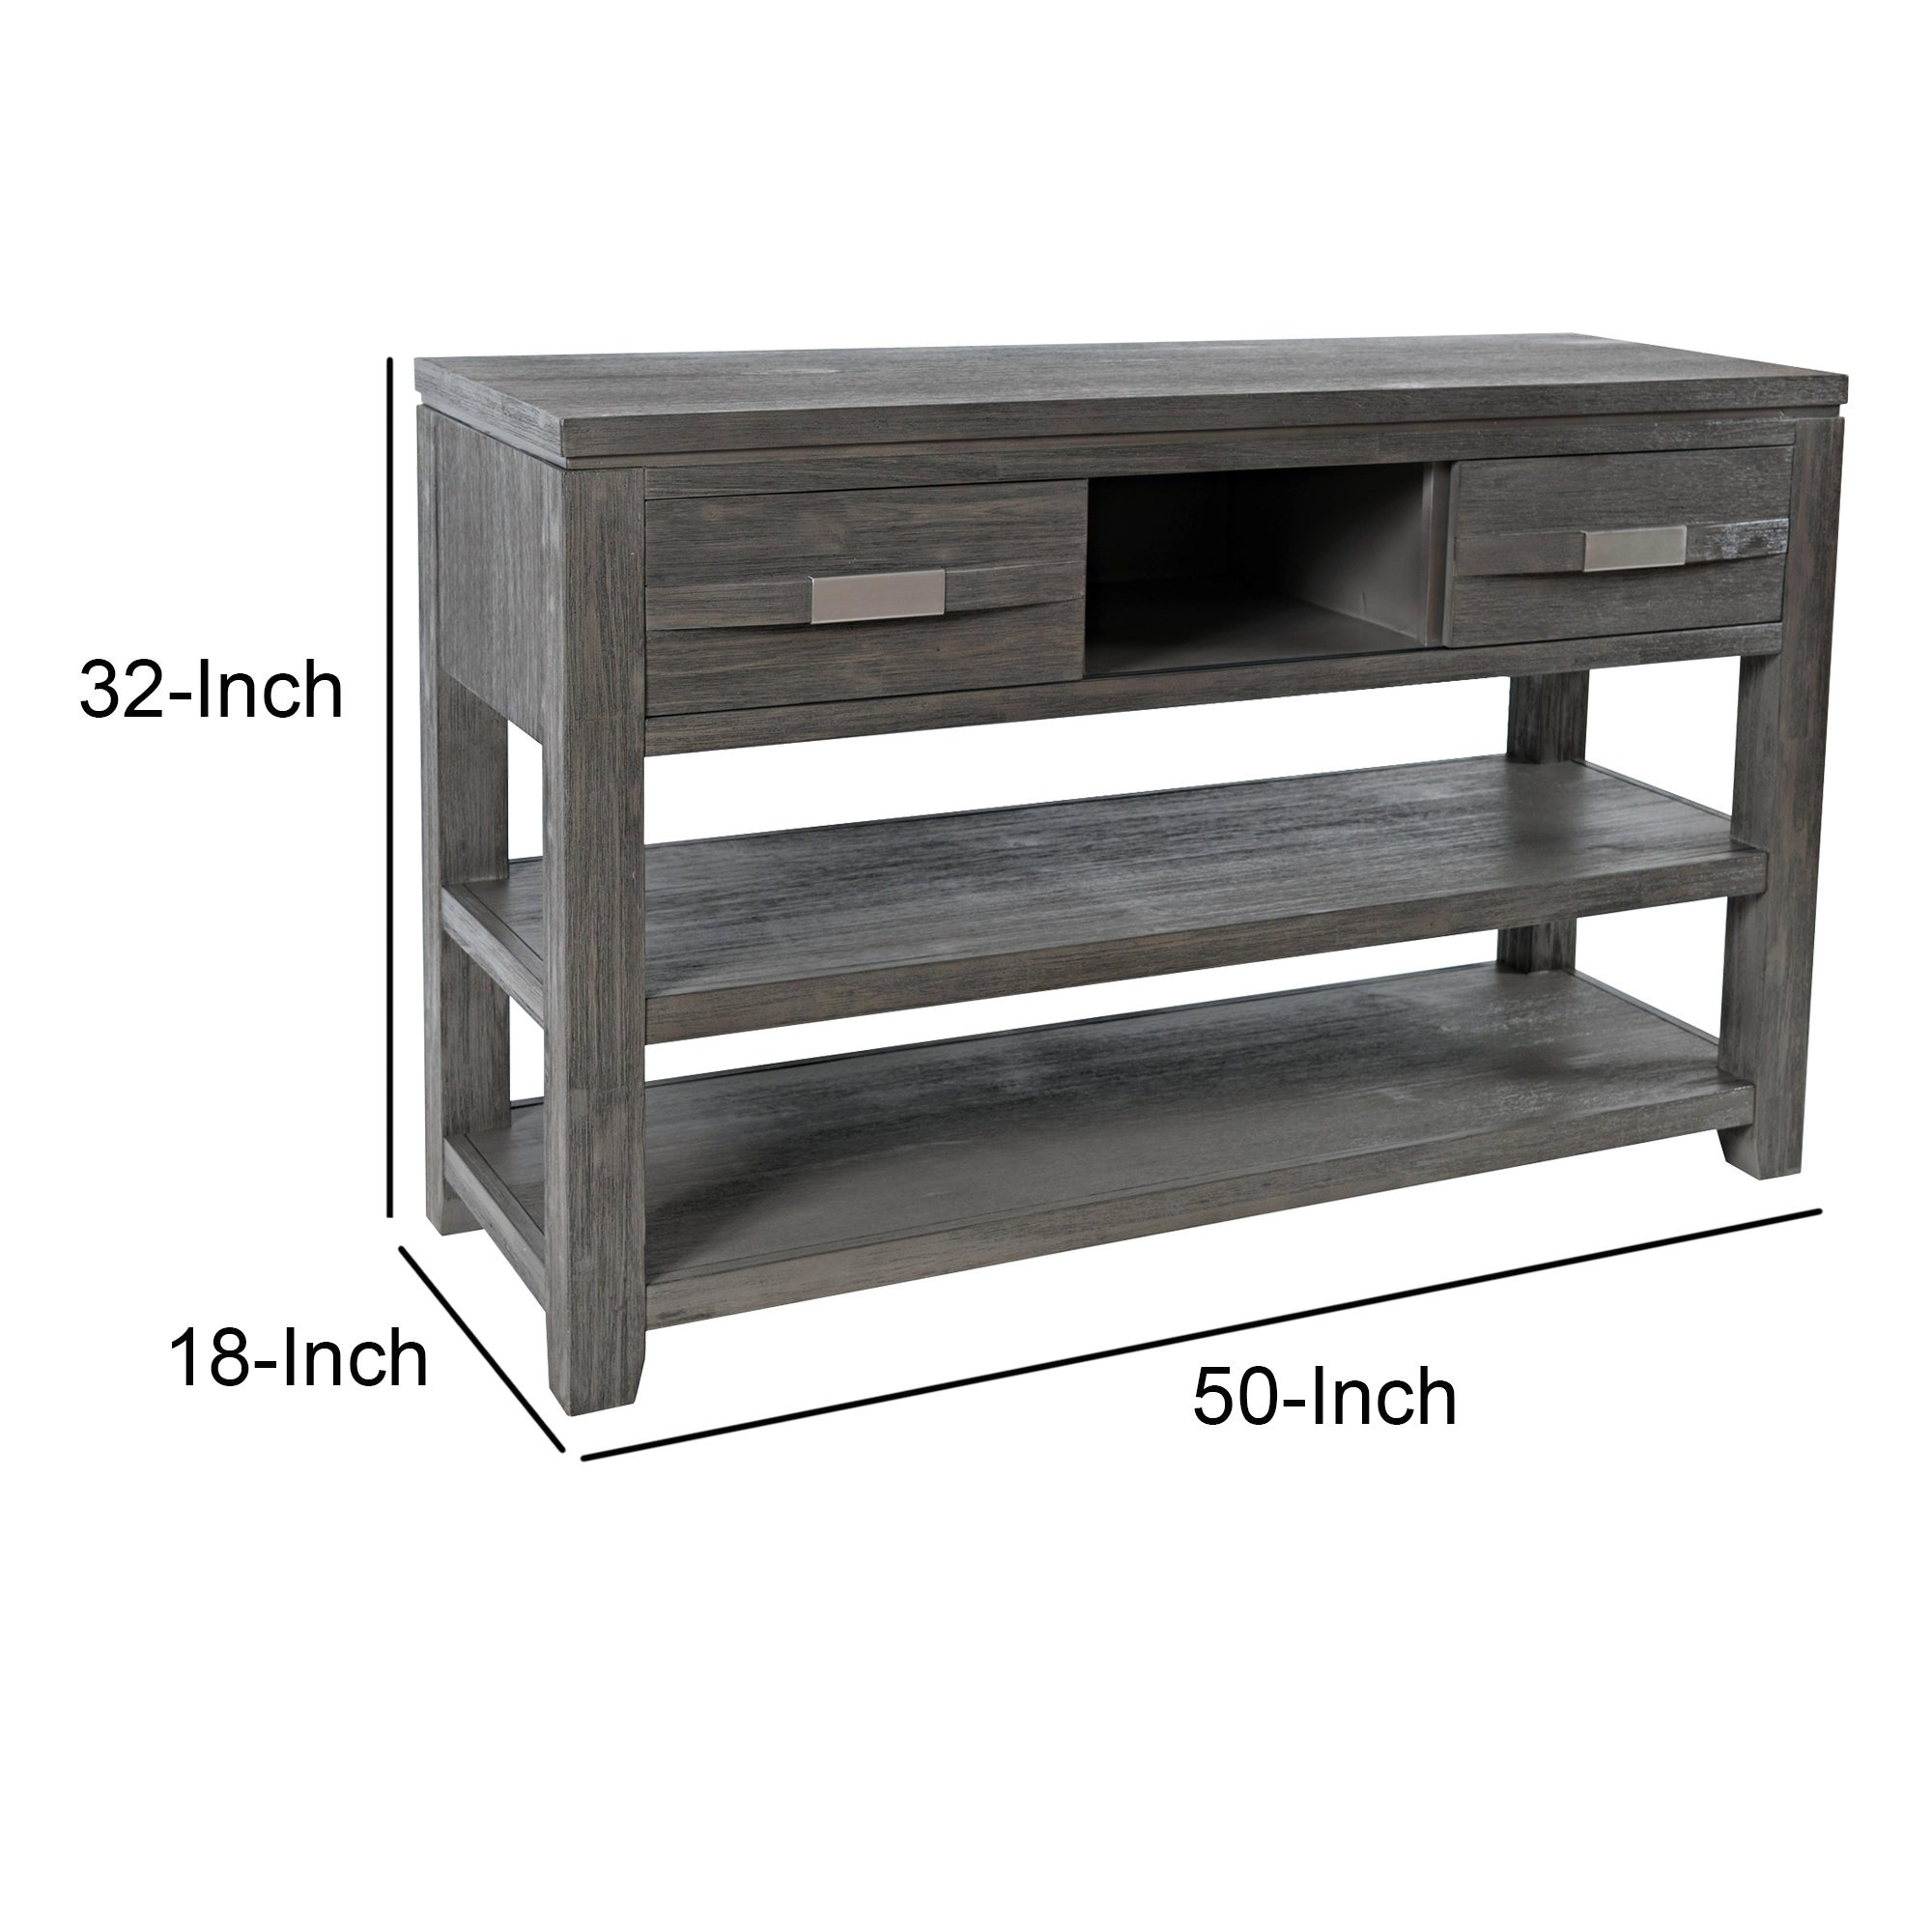 Wooden Sofa Table With 3 Open